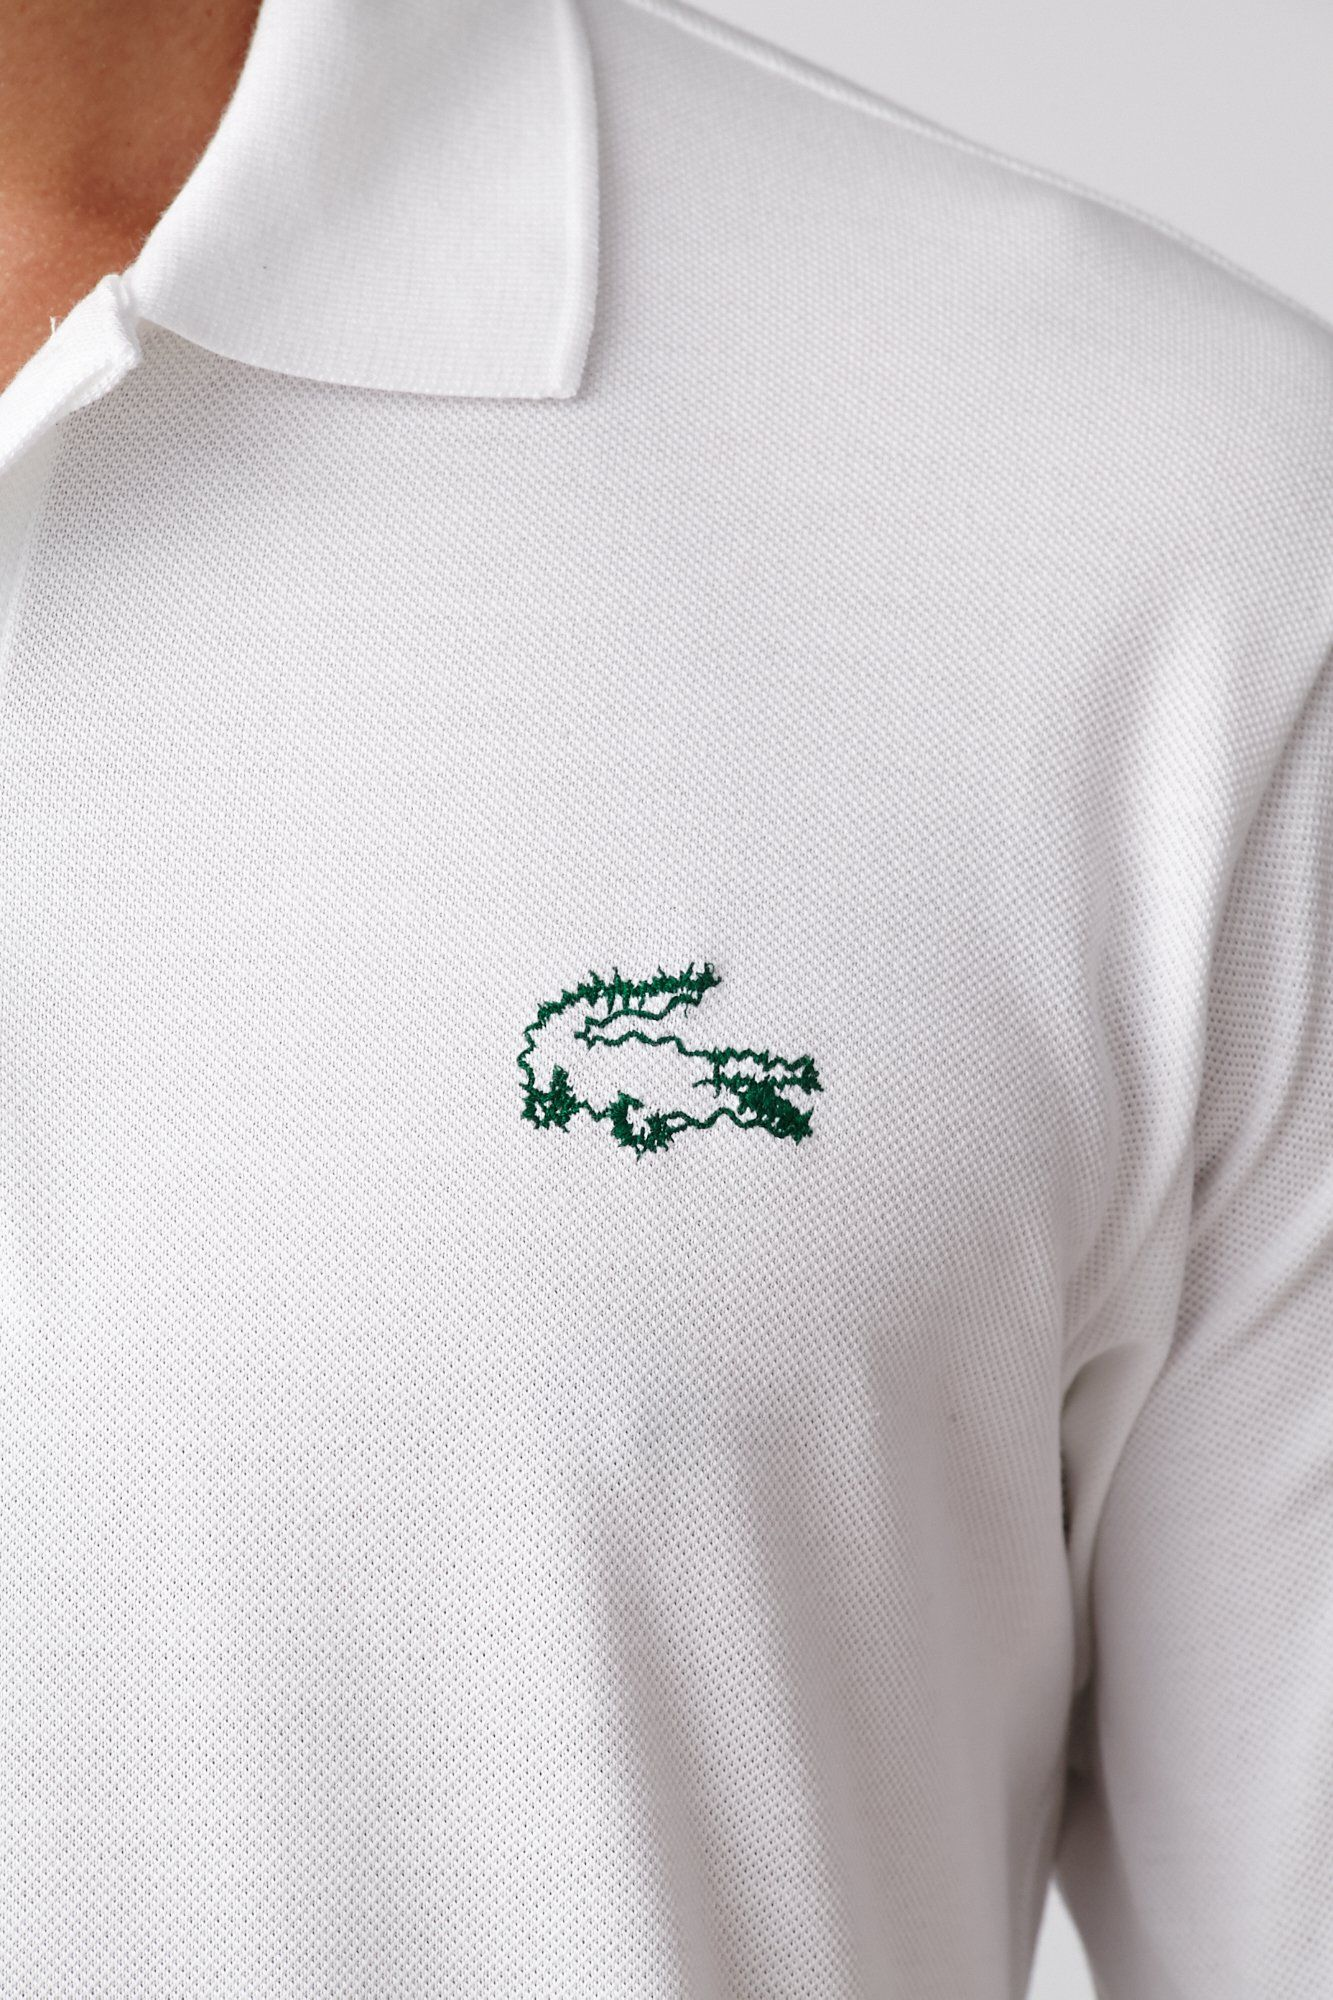 Peter Saville For Lacoste Polo